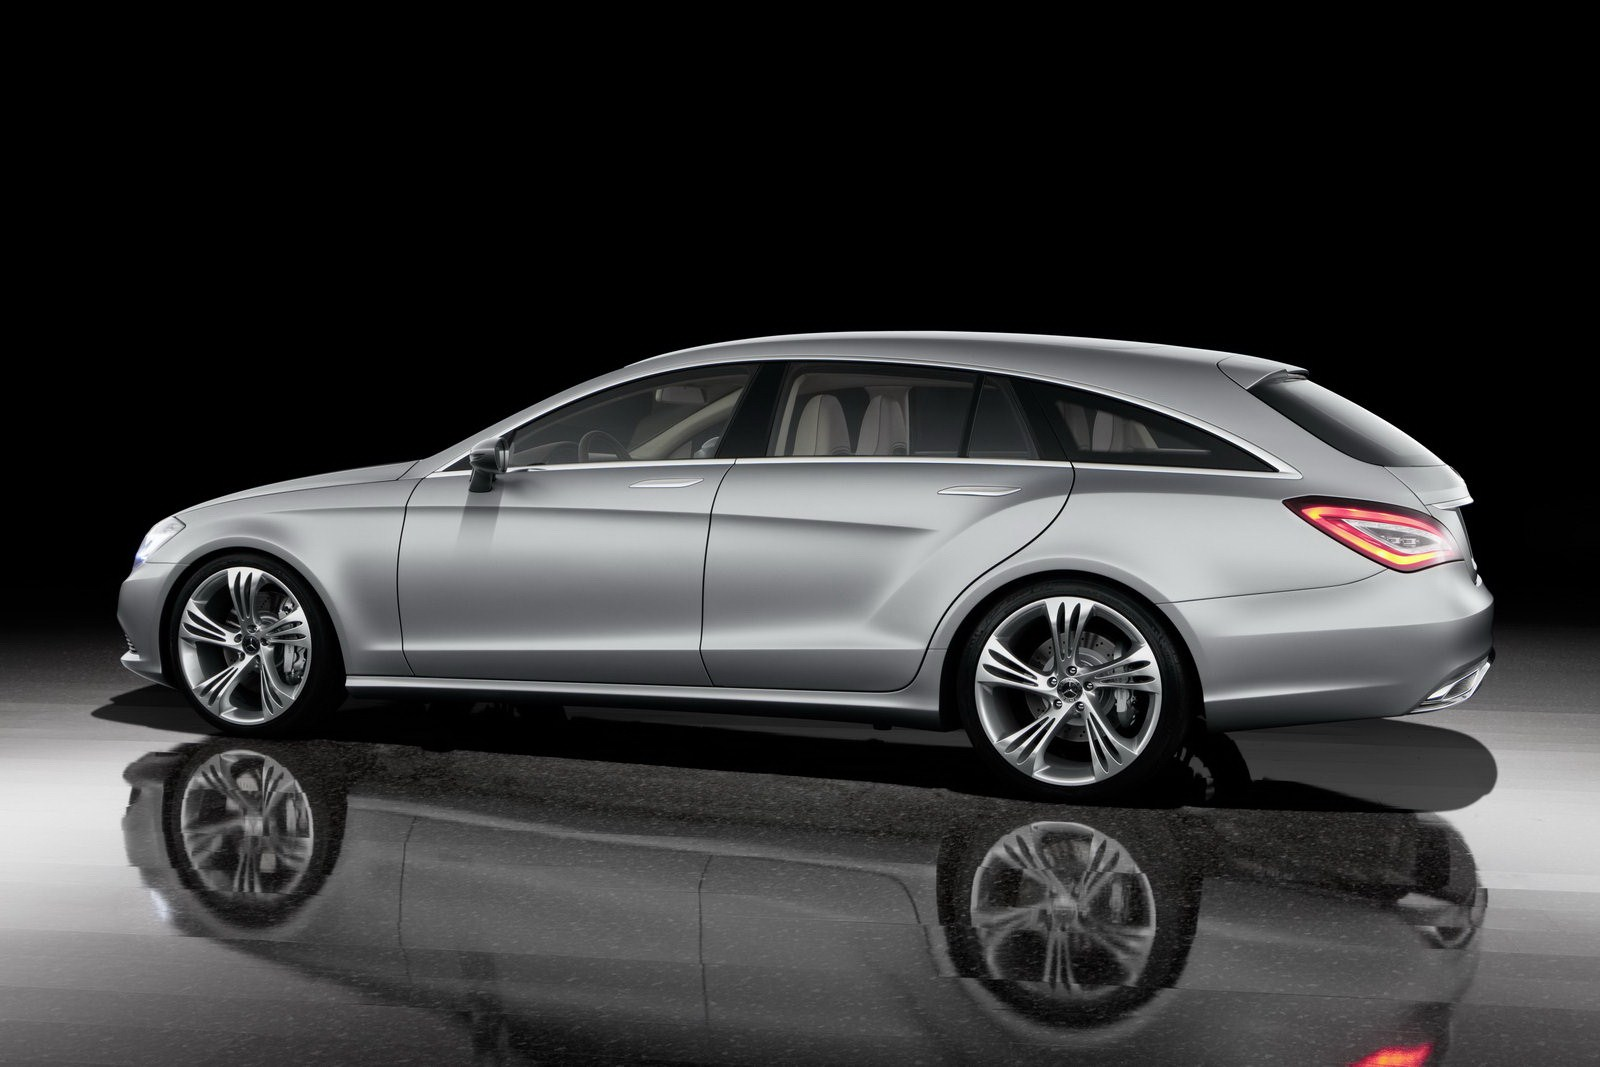 mercedes cla shooting brake car prices pictures prices wallpaper specs review. Black Bedroom Furniture Sets. Home Design Ideas